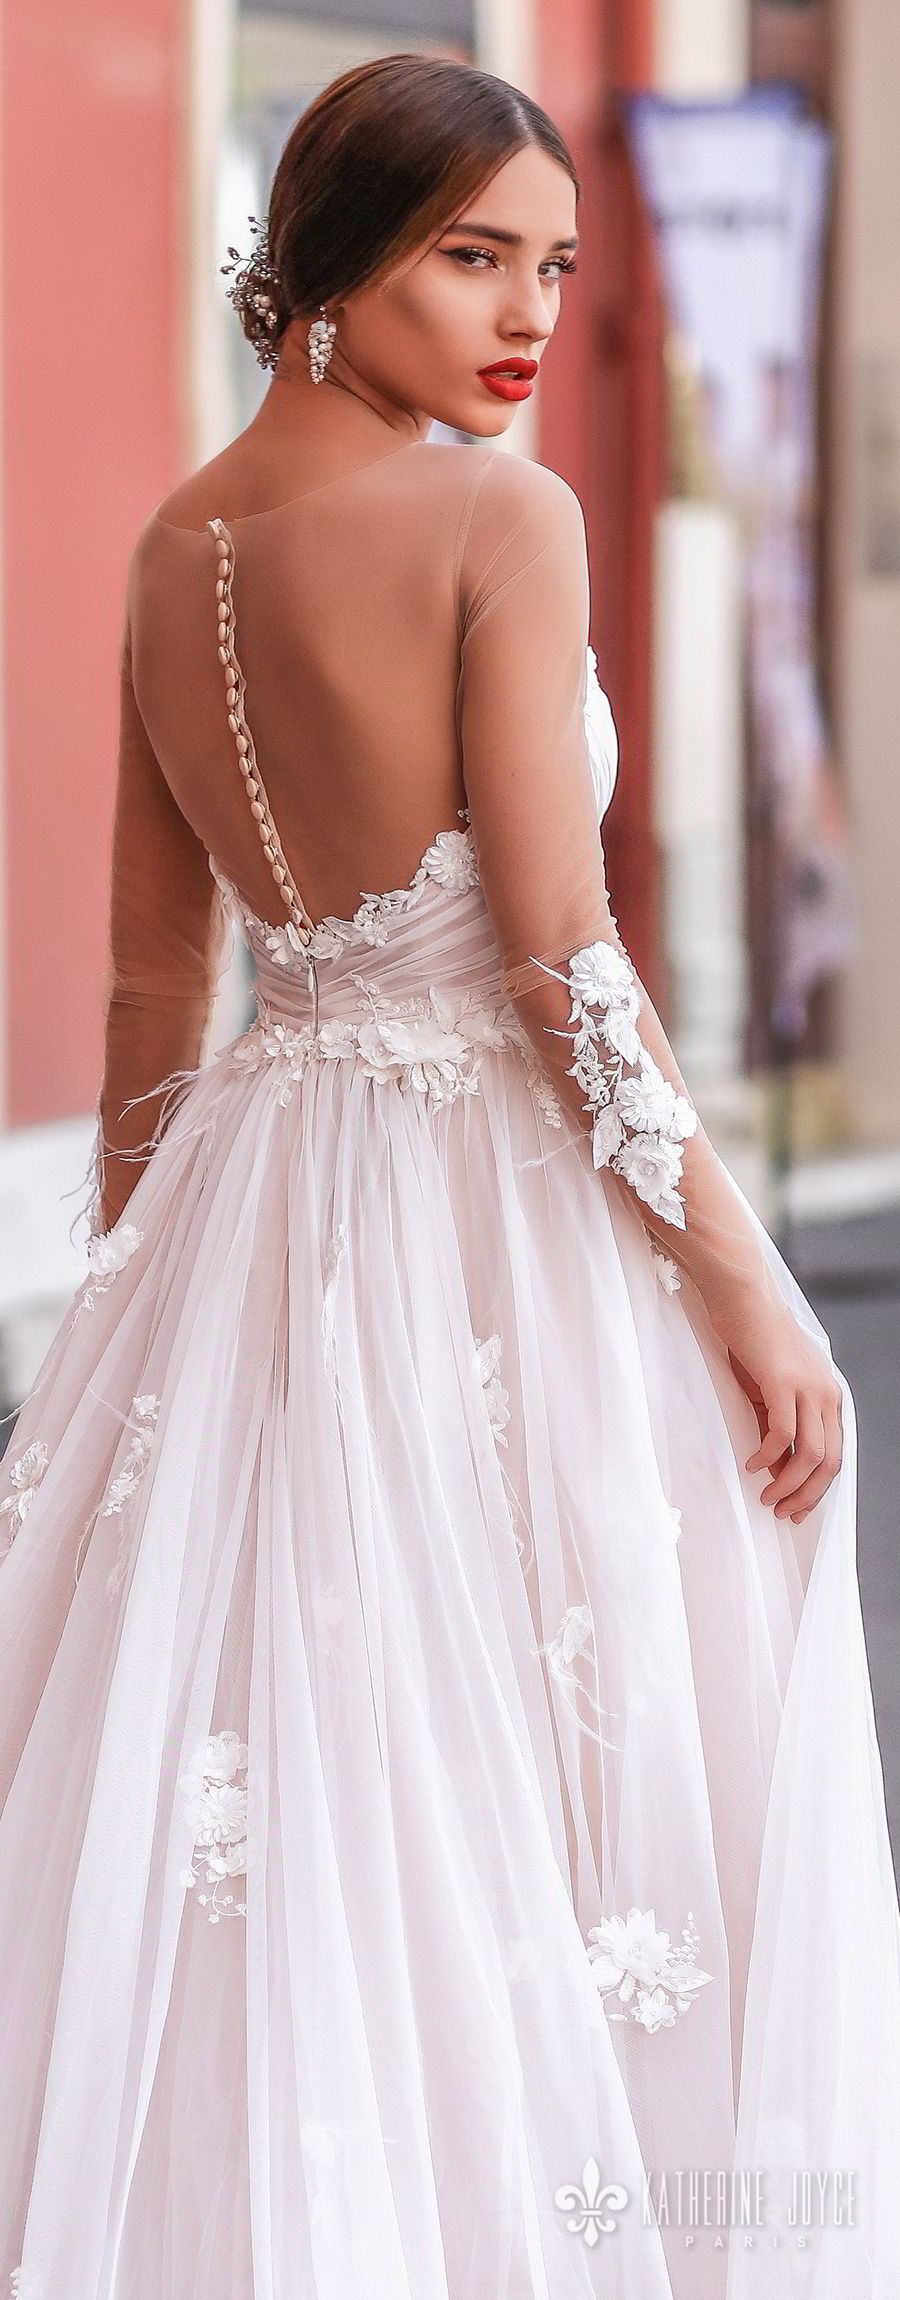 katherine joyce 2018 bridal sheer long sleeves illusion bateau strapless sweetheart neckline heavily embellished bodice romantic pink a  line wedding dress chapel train (catalina) zbv